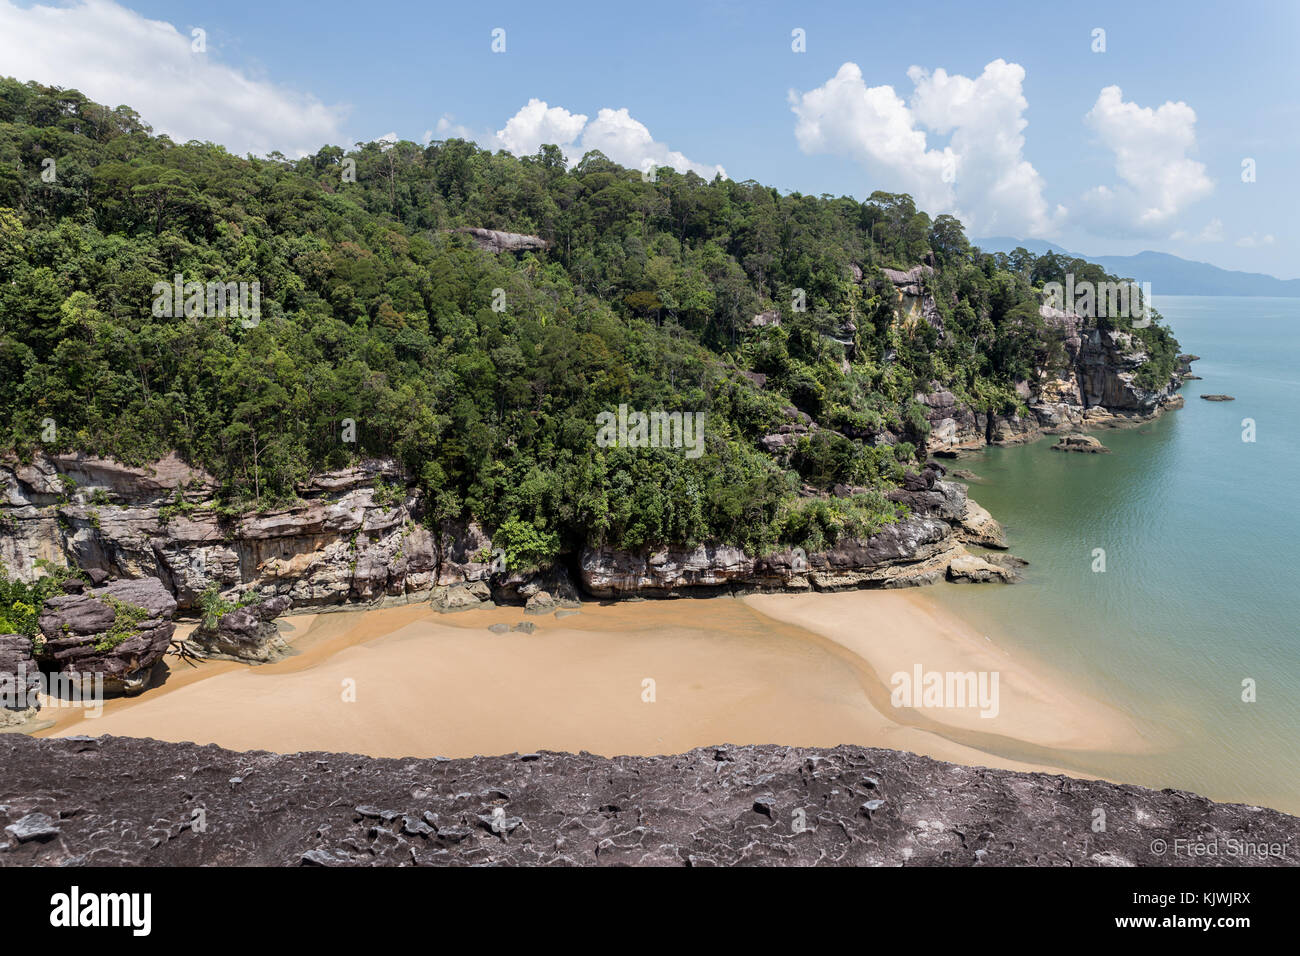 Landscapes at Bako national park in Malaysia  Borneo island Stock     Landscapes at Bako national park in Malaysia  Borneo island